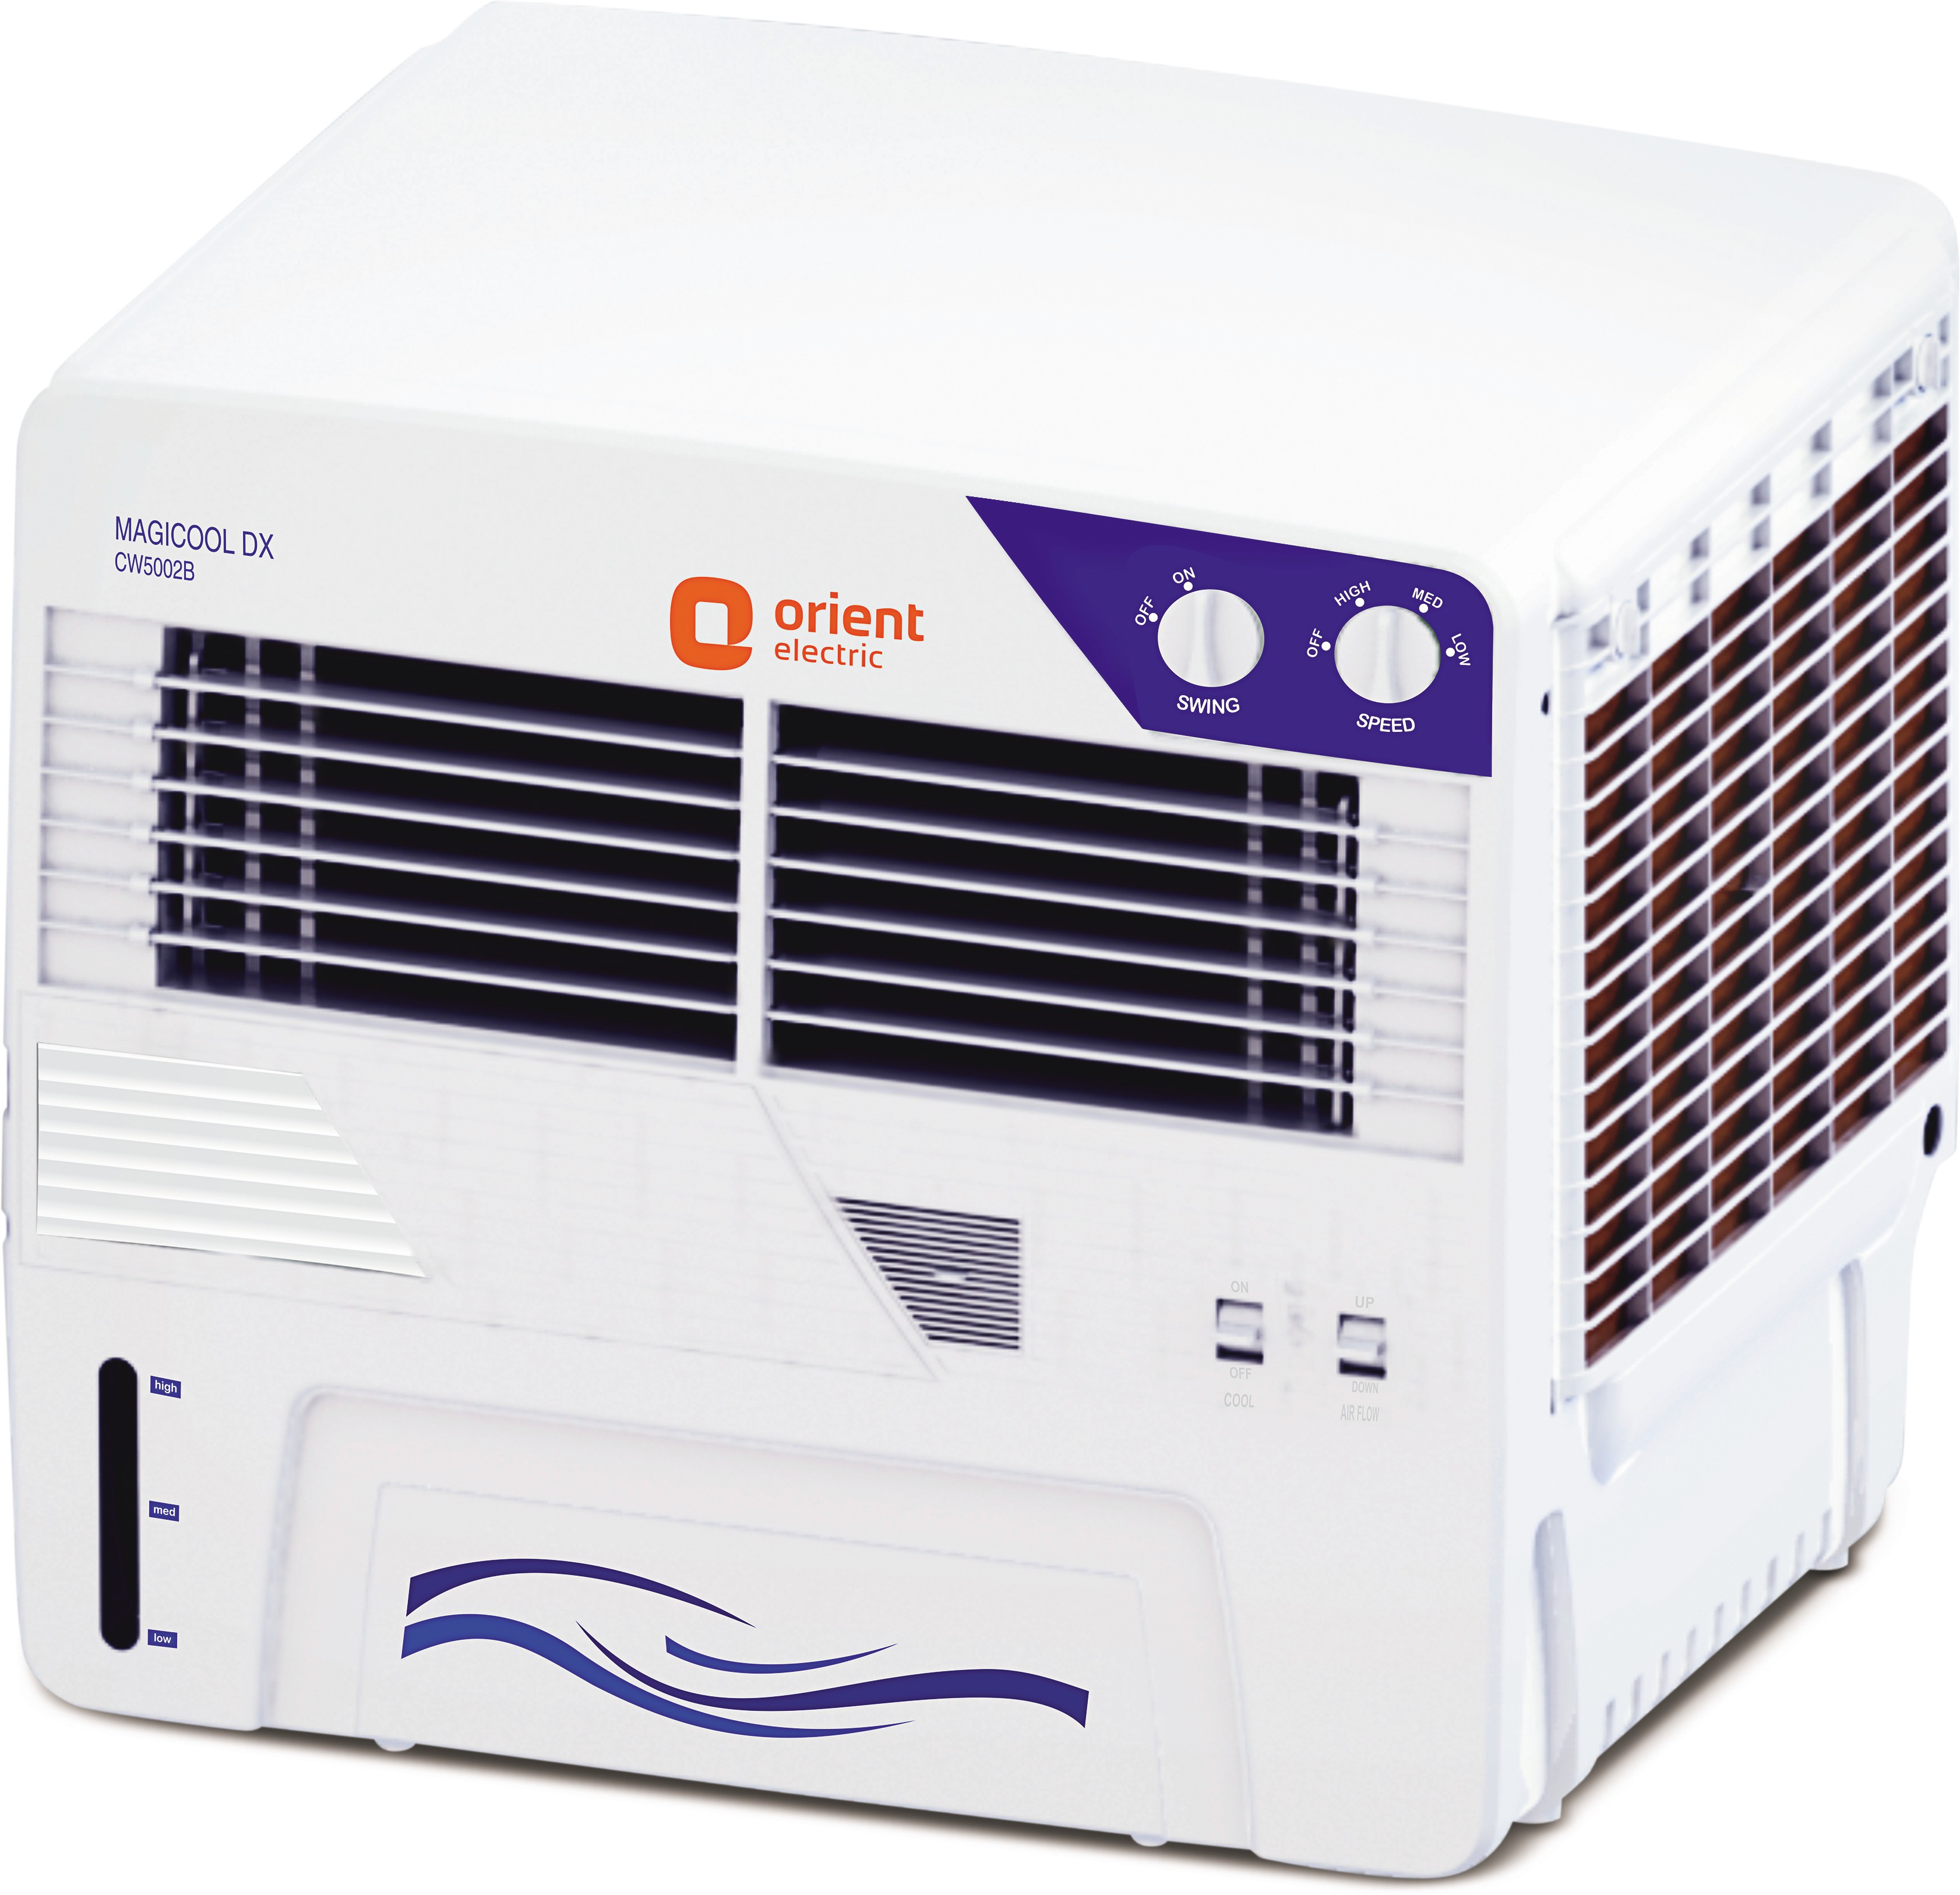 Singer liberty jumbo dx desert cooler online at best price in india - View Orient Electric Magicool Dx Cw5002b Window Air Cooler White 50 Litres